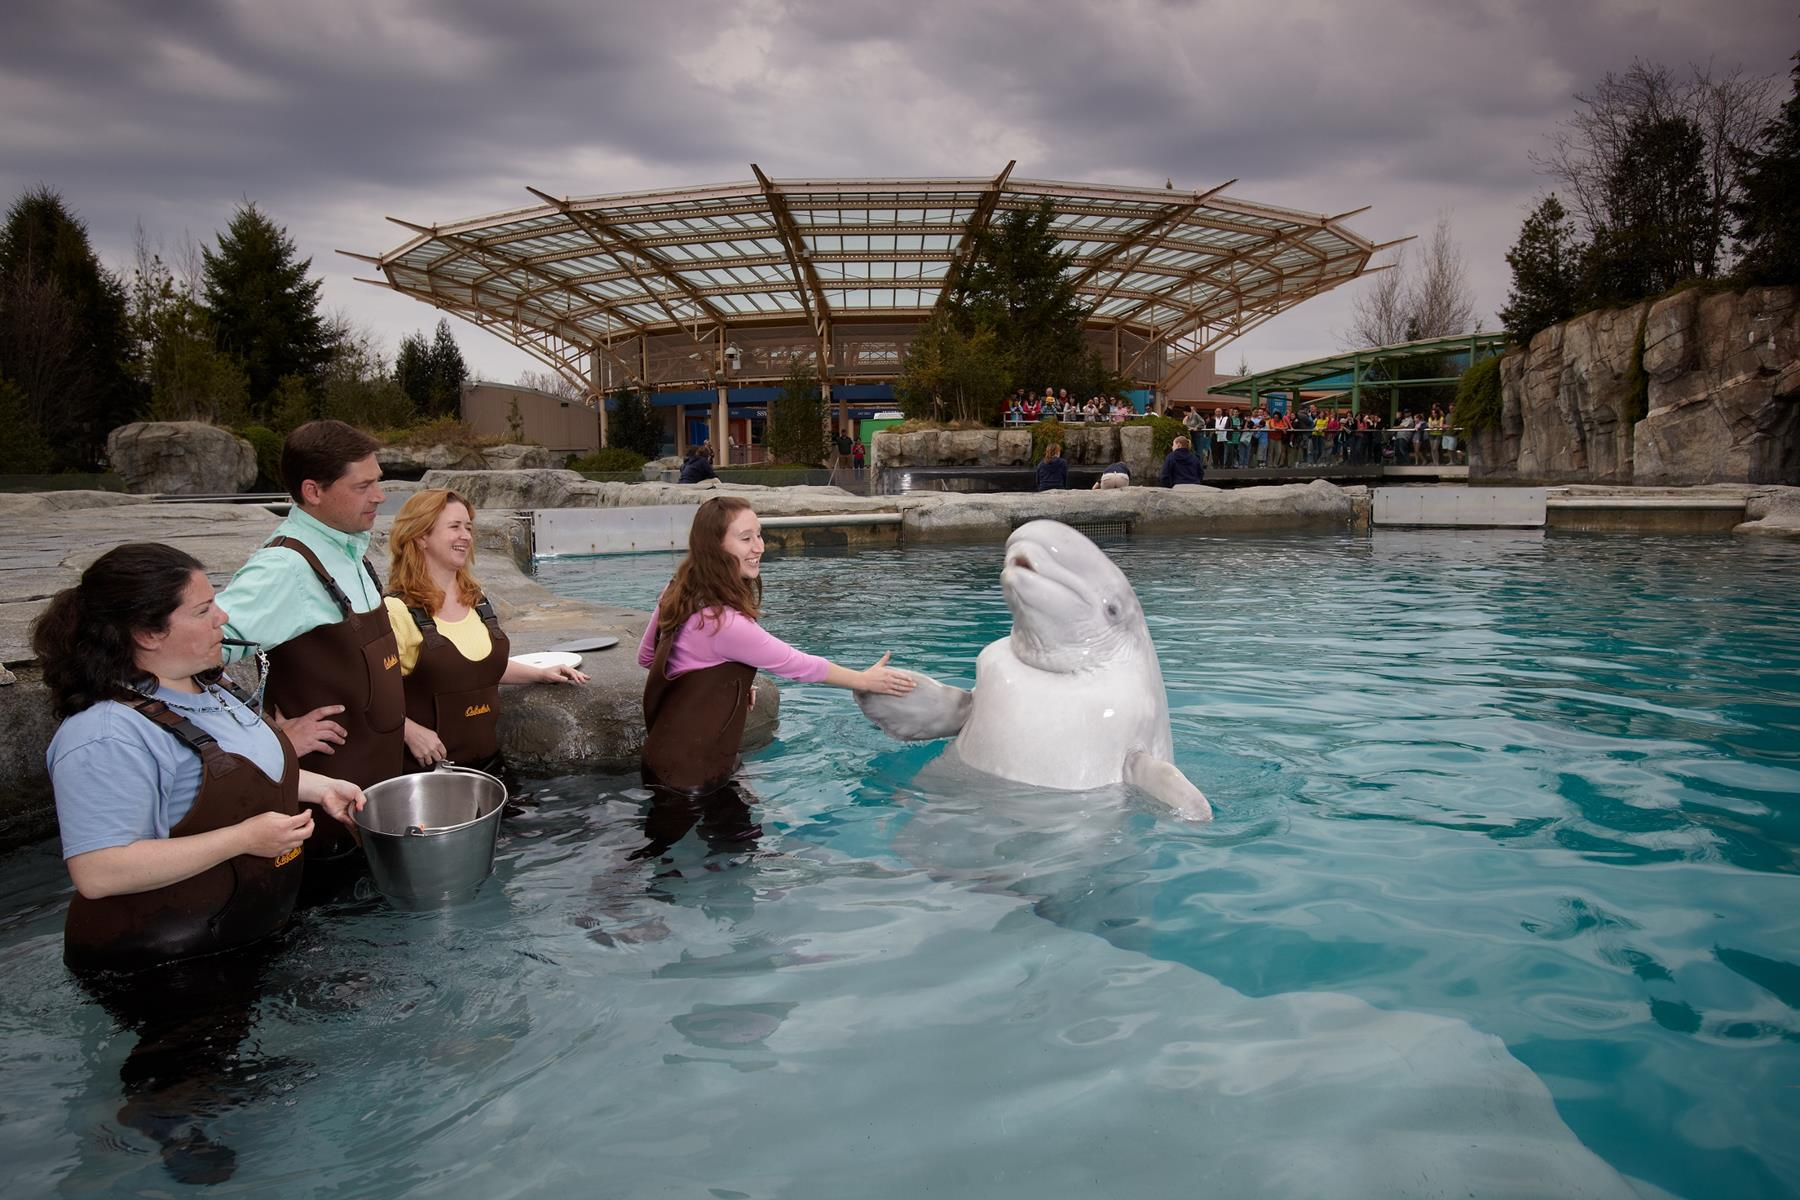 16 Must Visit U.S. Aquariums in 2016